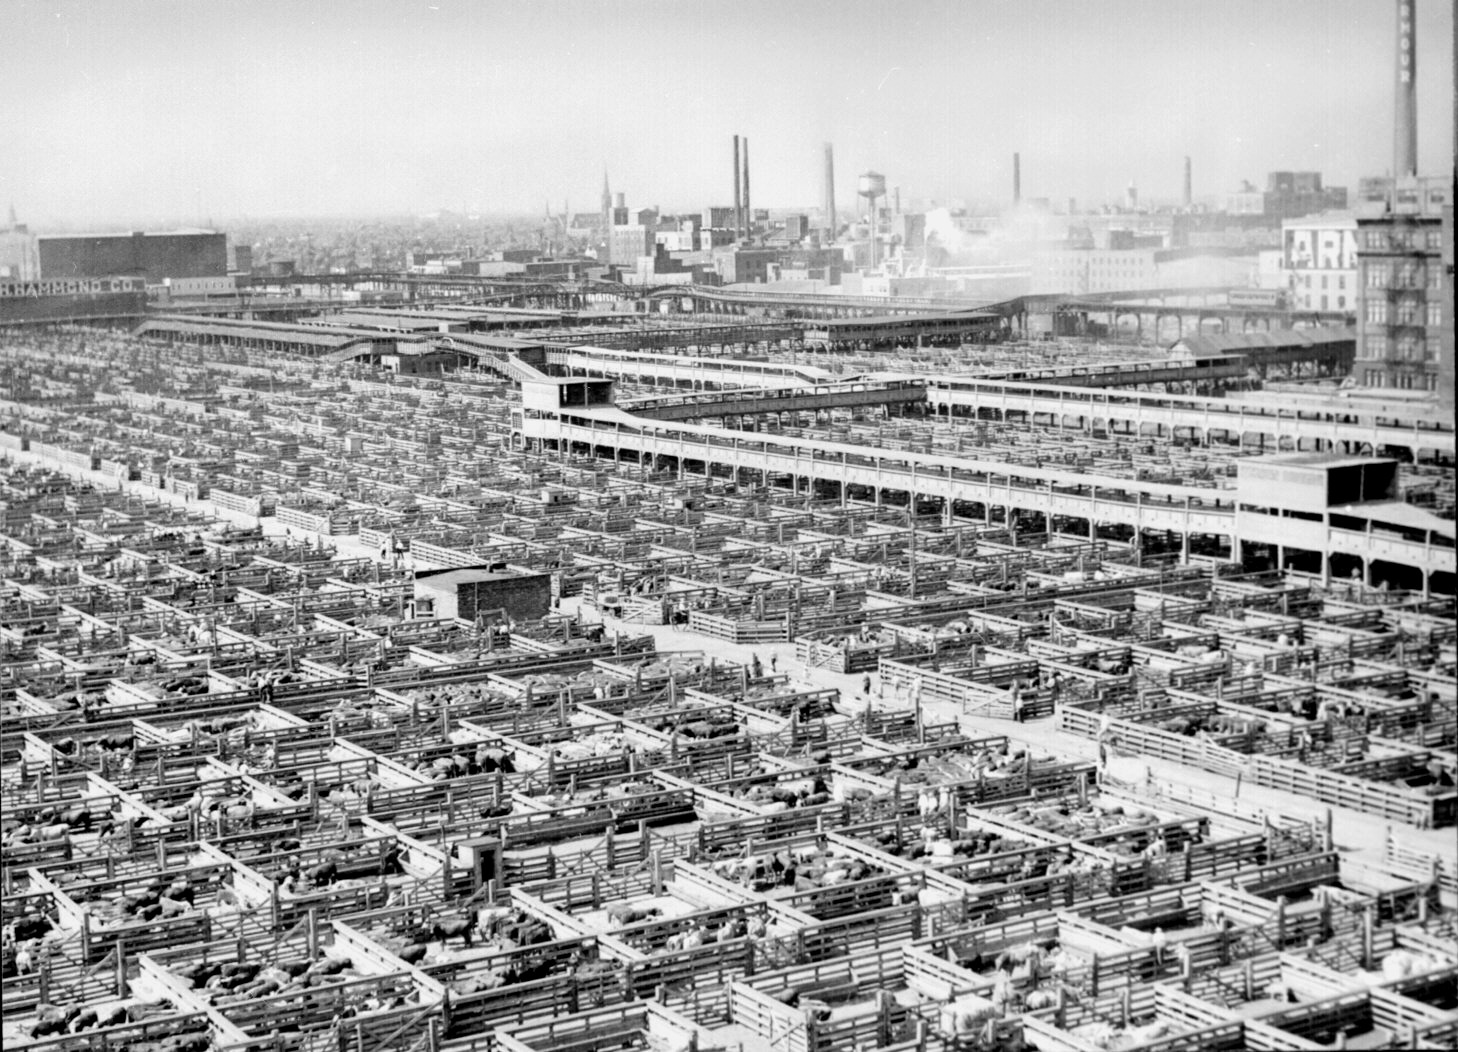 http://upload.wikimedia.org/wikipedia/commons/7/71/Livestock_chicago_1947.jpg